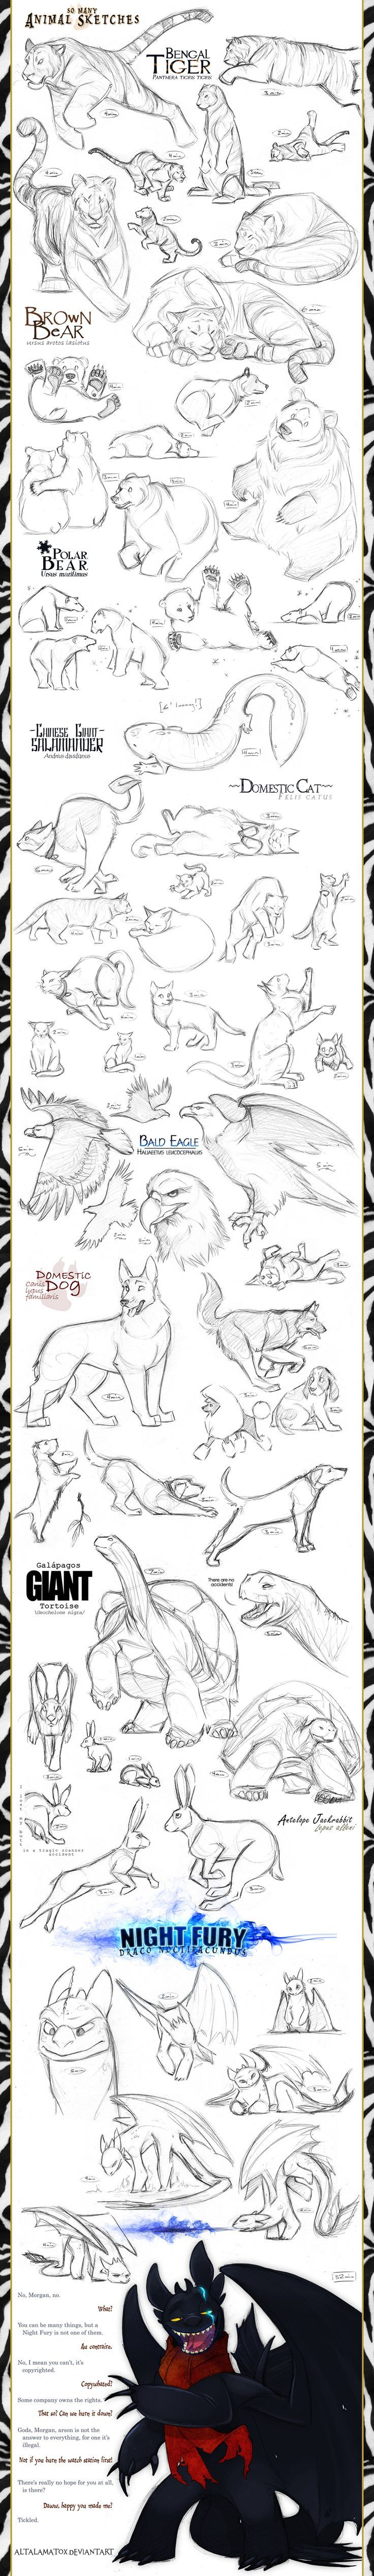 Animal Sketches by Altalamatox.deviantart.com on @deviantART || CHARACTER DESIGN REFERENCES | Find more at: